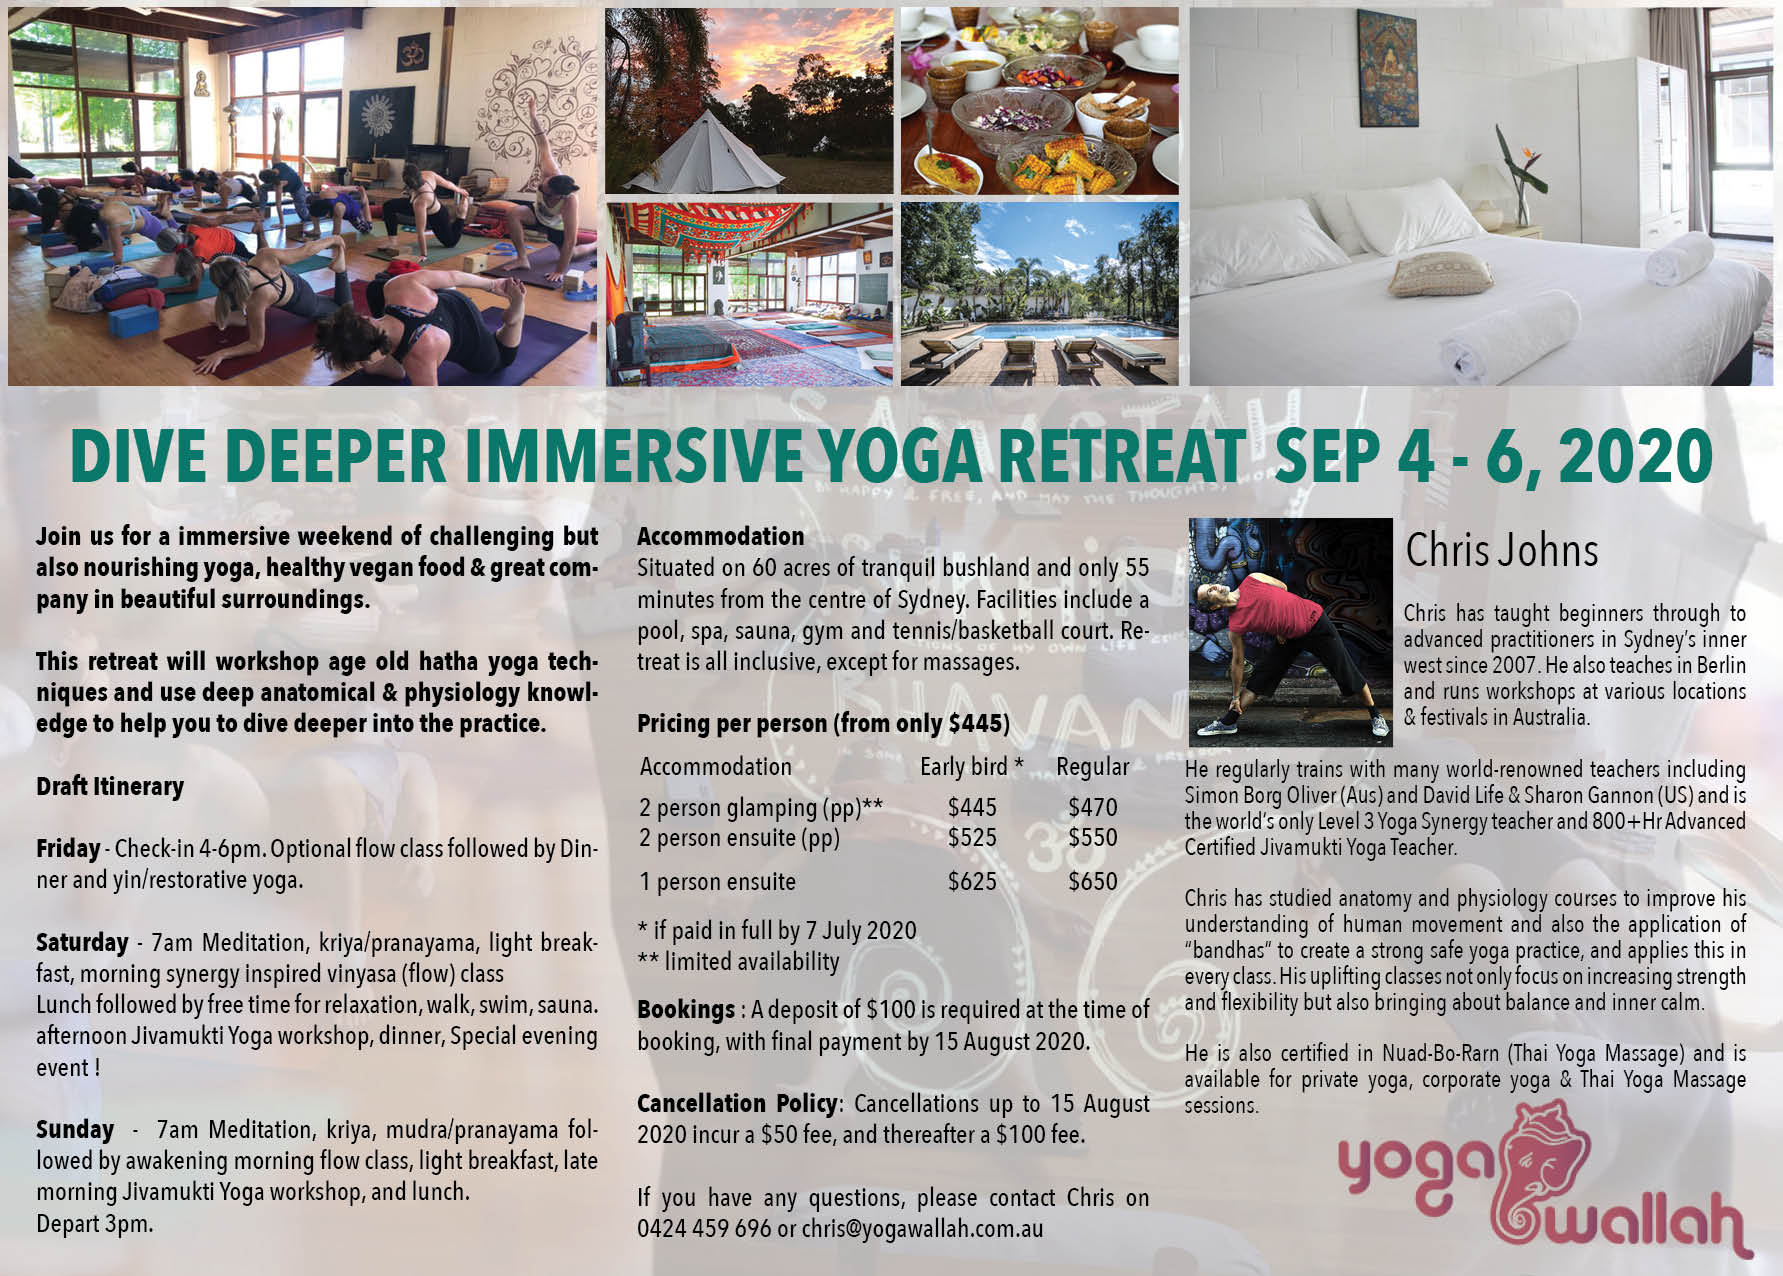 Dive Deeper Immersive Yoga retreat 4-6 Sep 2020 Broschure page 2